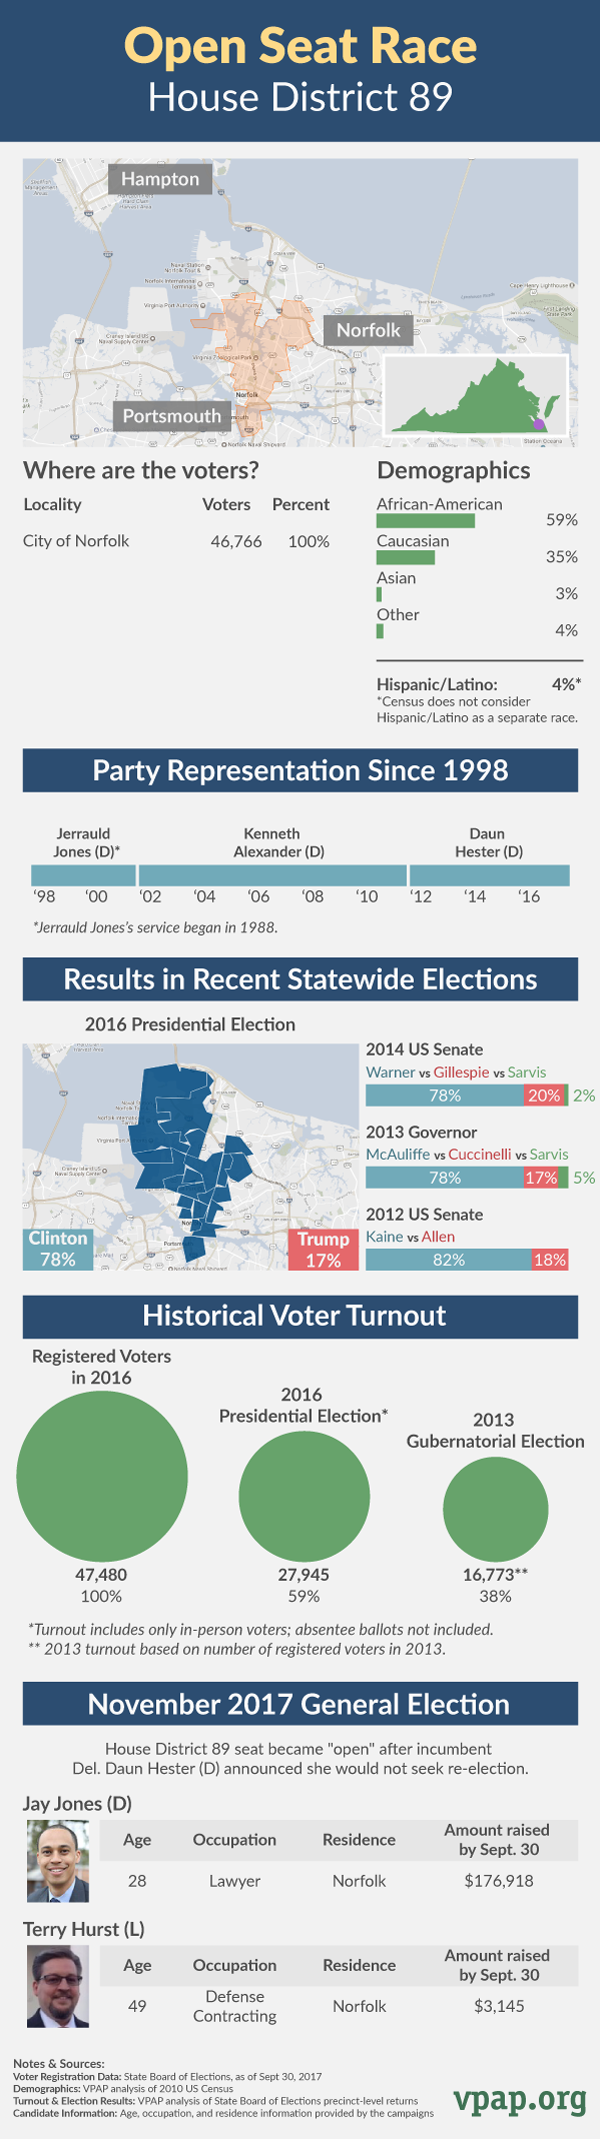 Open Seat Profile: House District 89